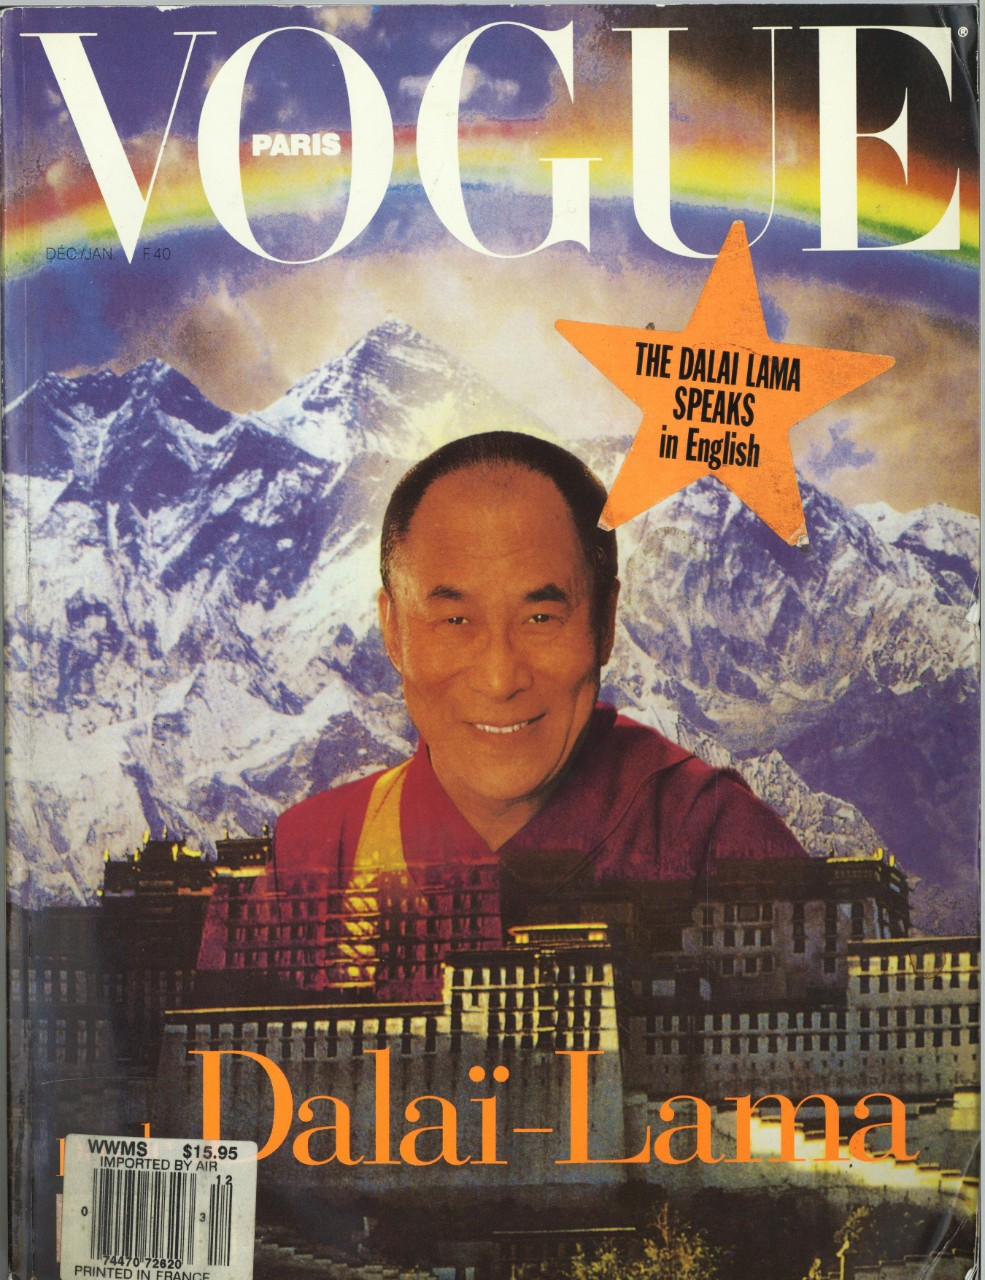 Dalai Lama on the cover of Vogue Magazine